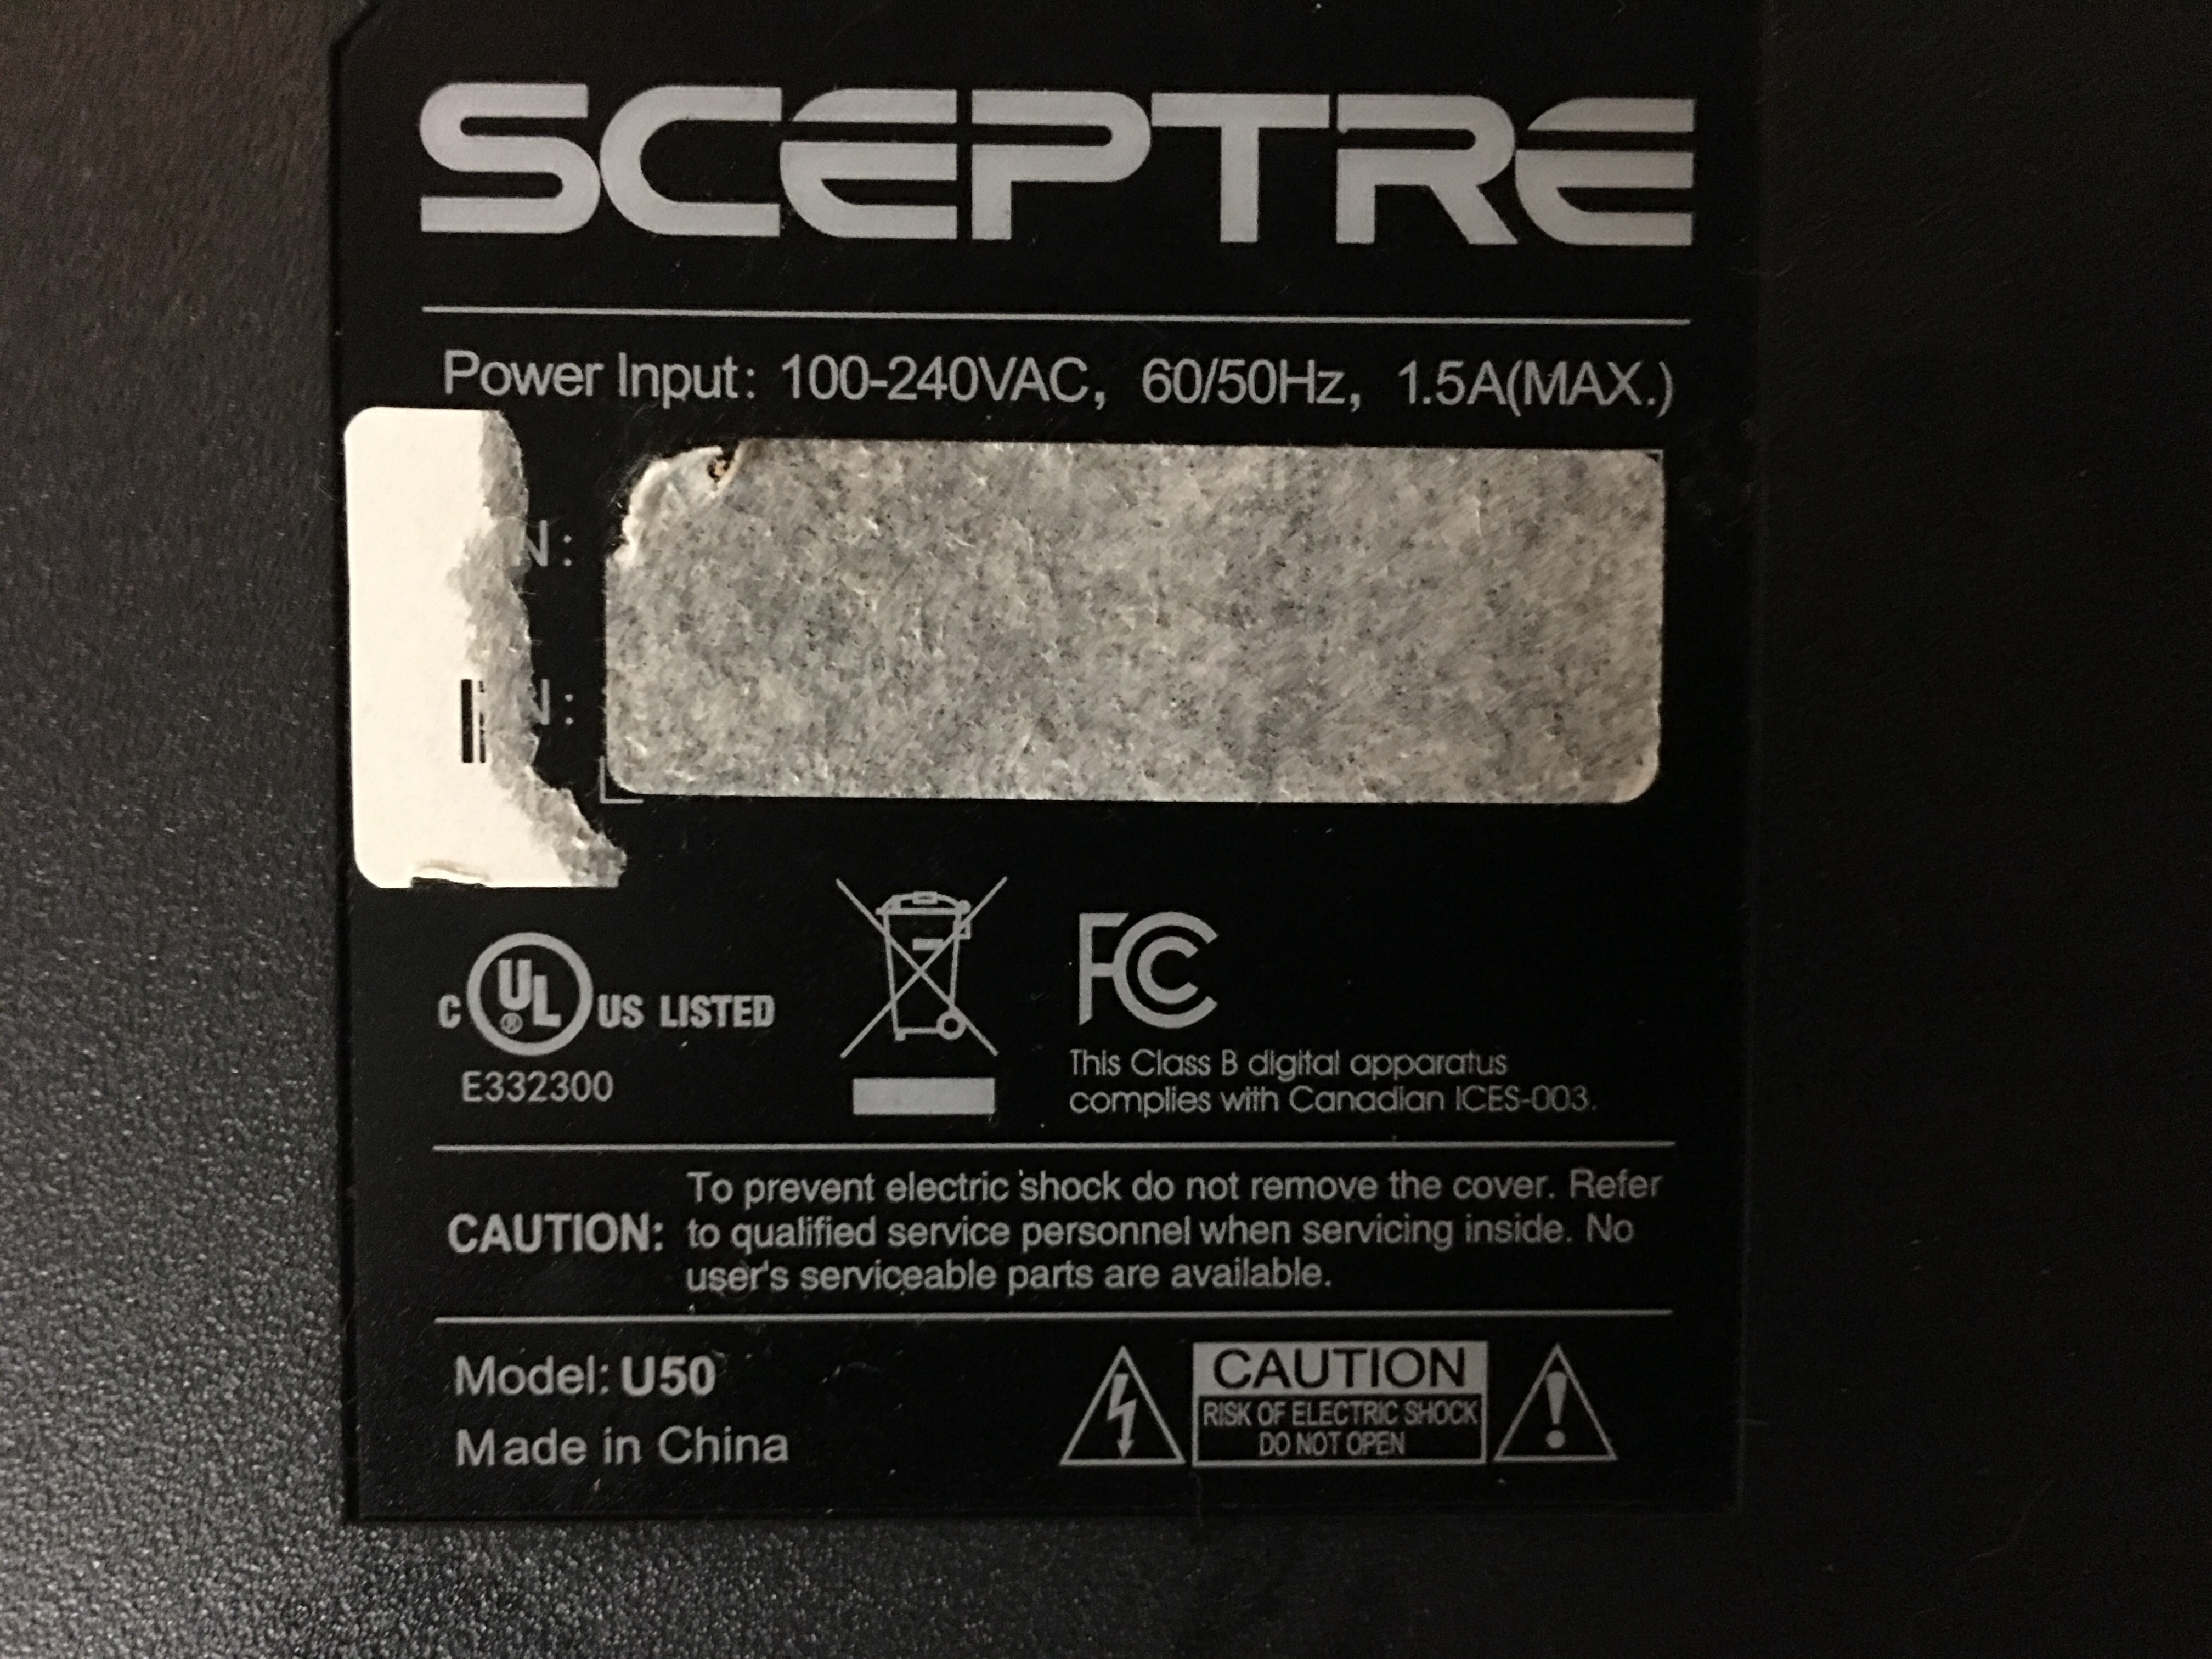 I have the sceptre u-50 4K series tv and i recently replaced the